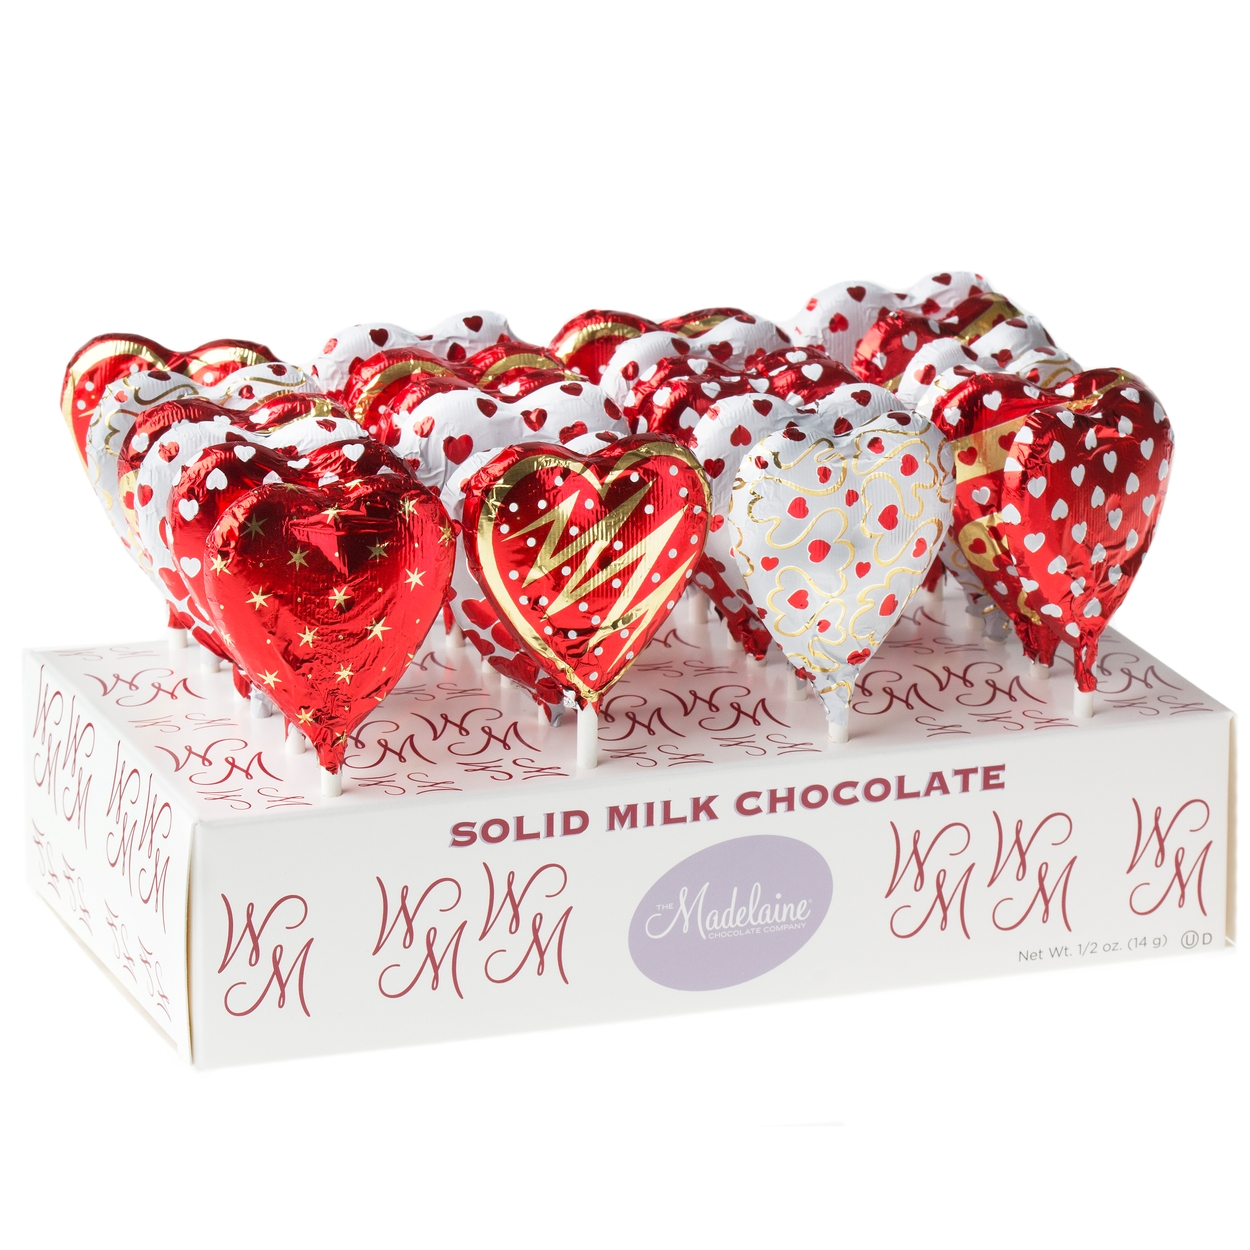 Milk Chocolate Heart Lollipops 24ct Box Wedding Candy Gifts Favors Oh Nuts